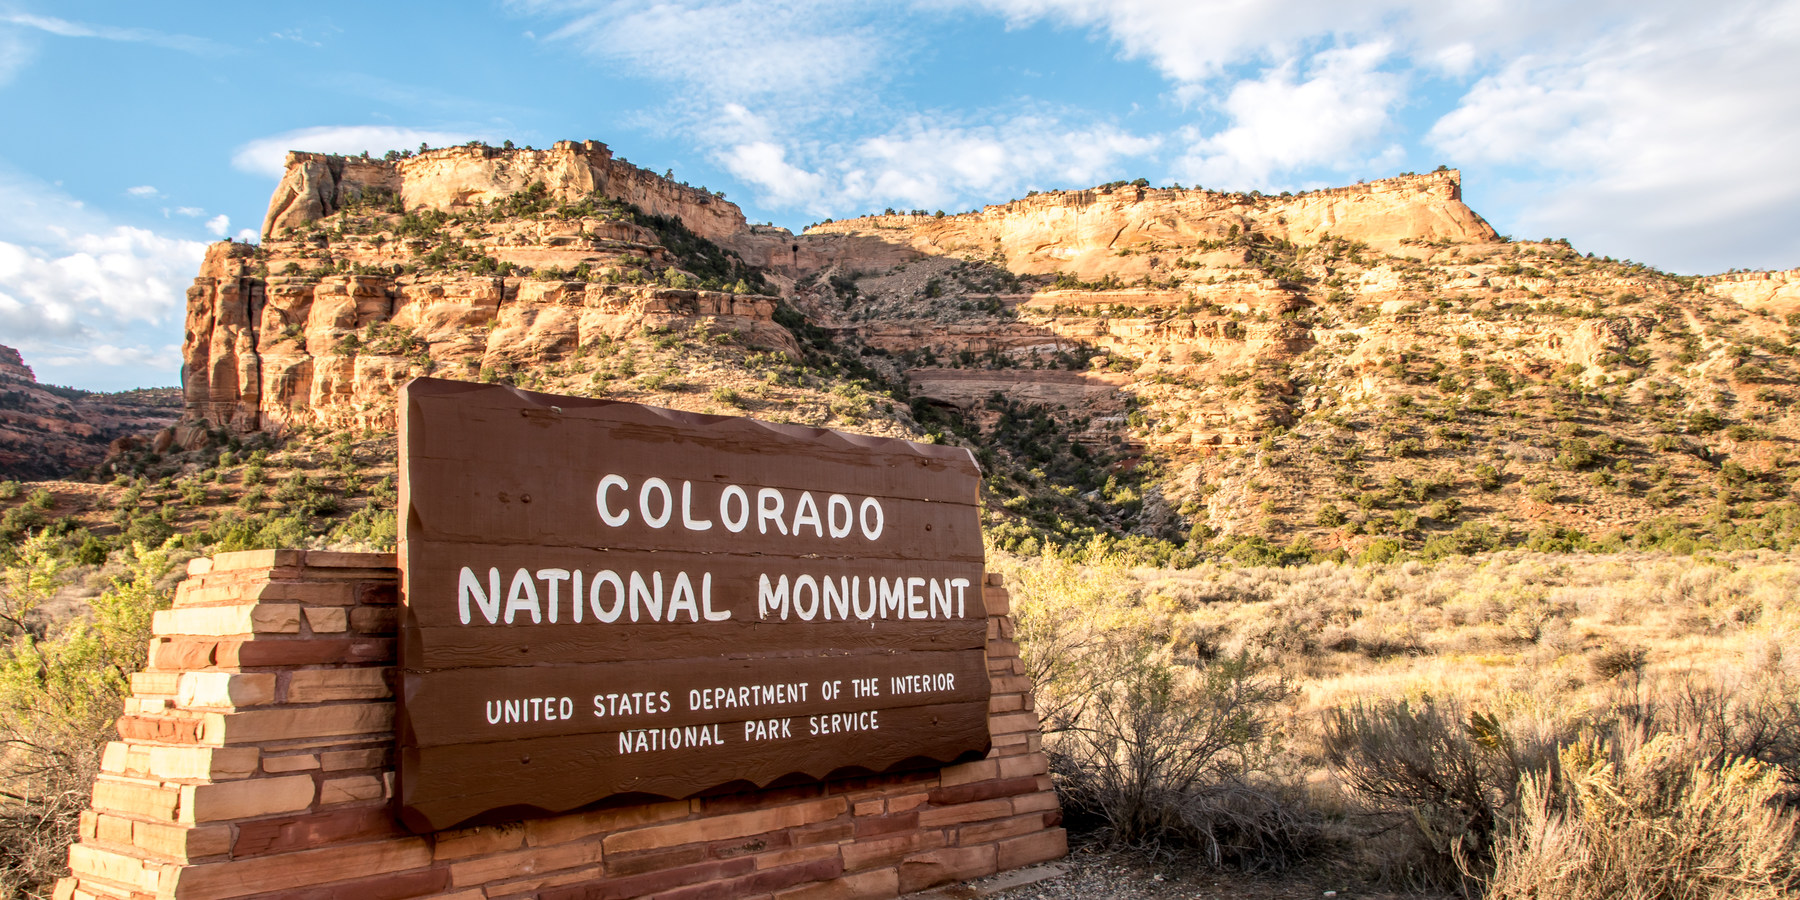 yosemite national park trails map with Colorado National Monument on Monument Valley likewise Alamere Creek Beach furthermore Colorado National Monument together with Sierra Nevada  U S in addition Mountain Image yose11563.